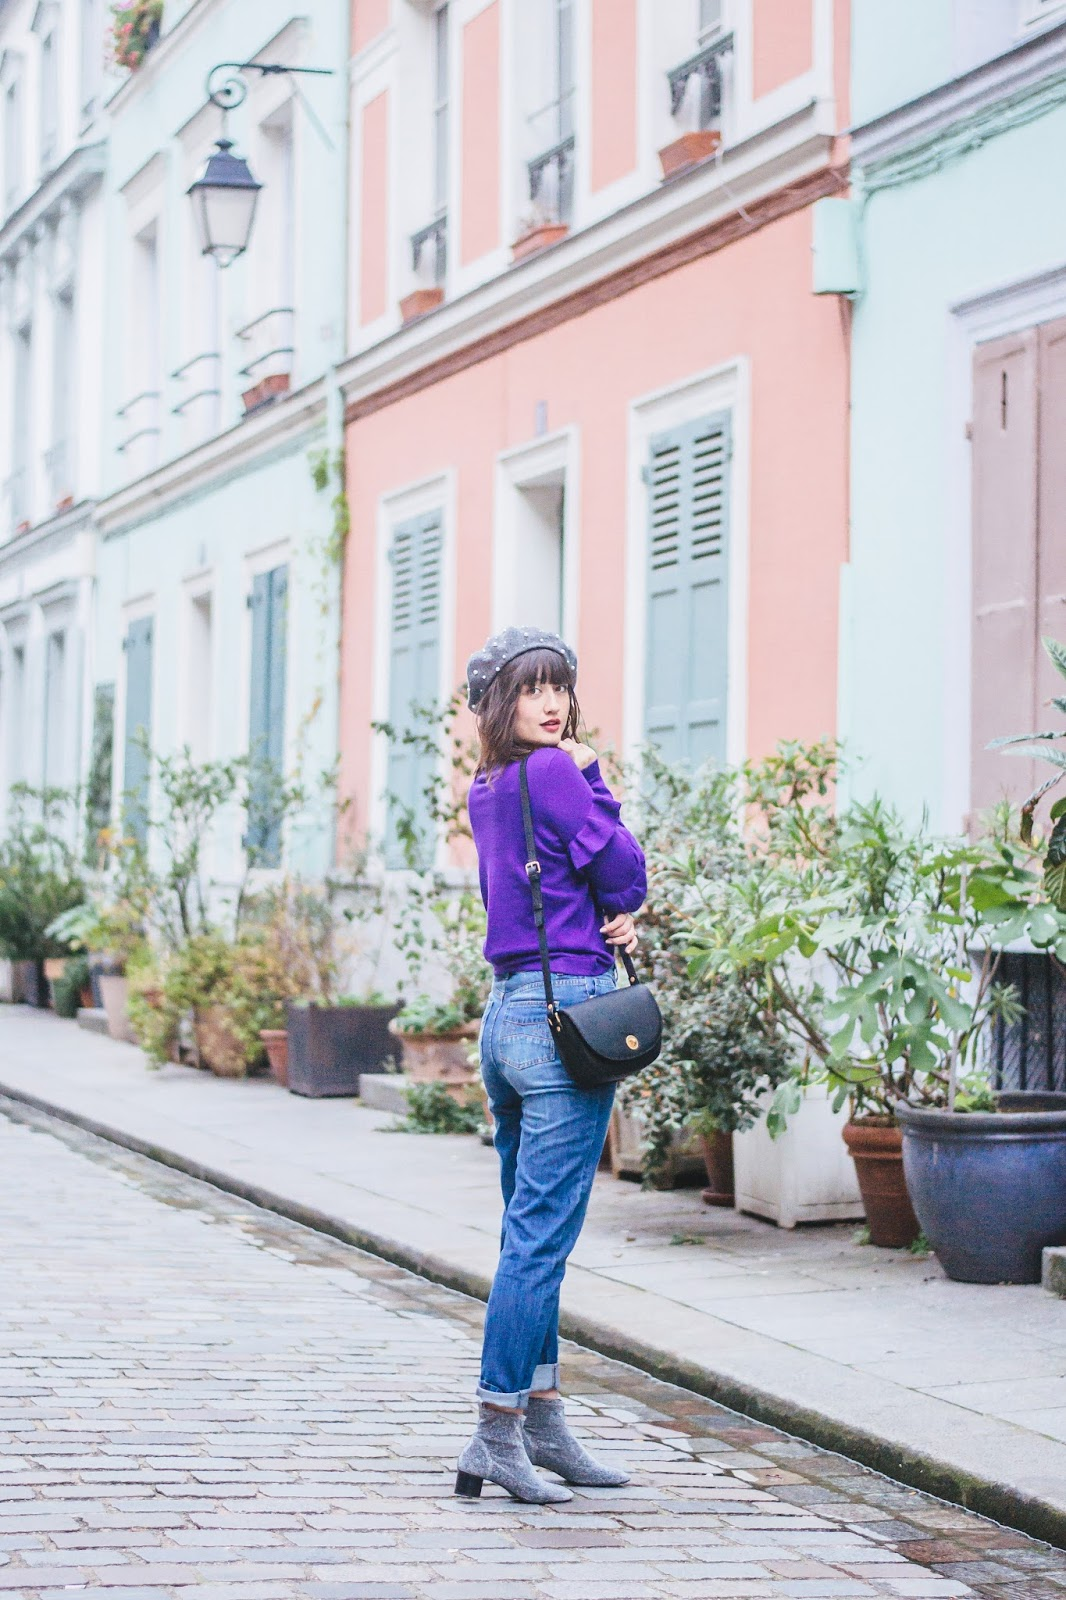 streetstyle - Purple Sweater and Vibrant Homes